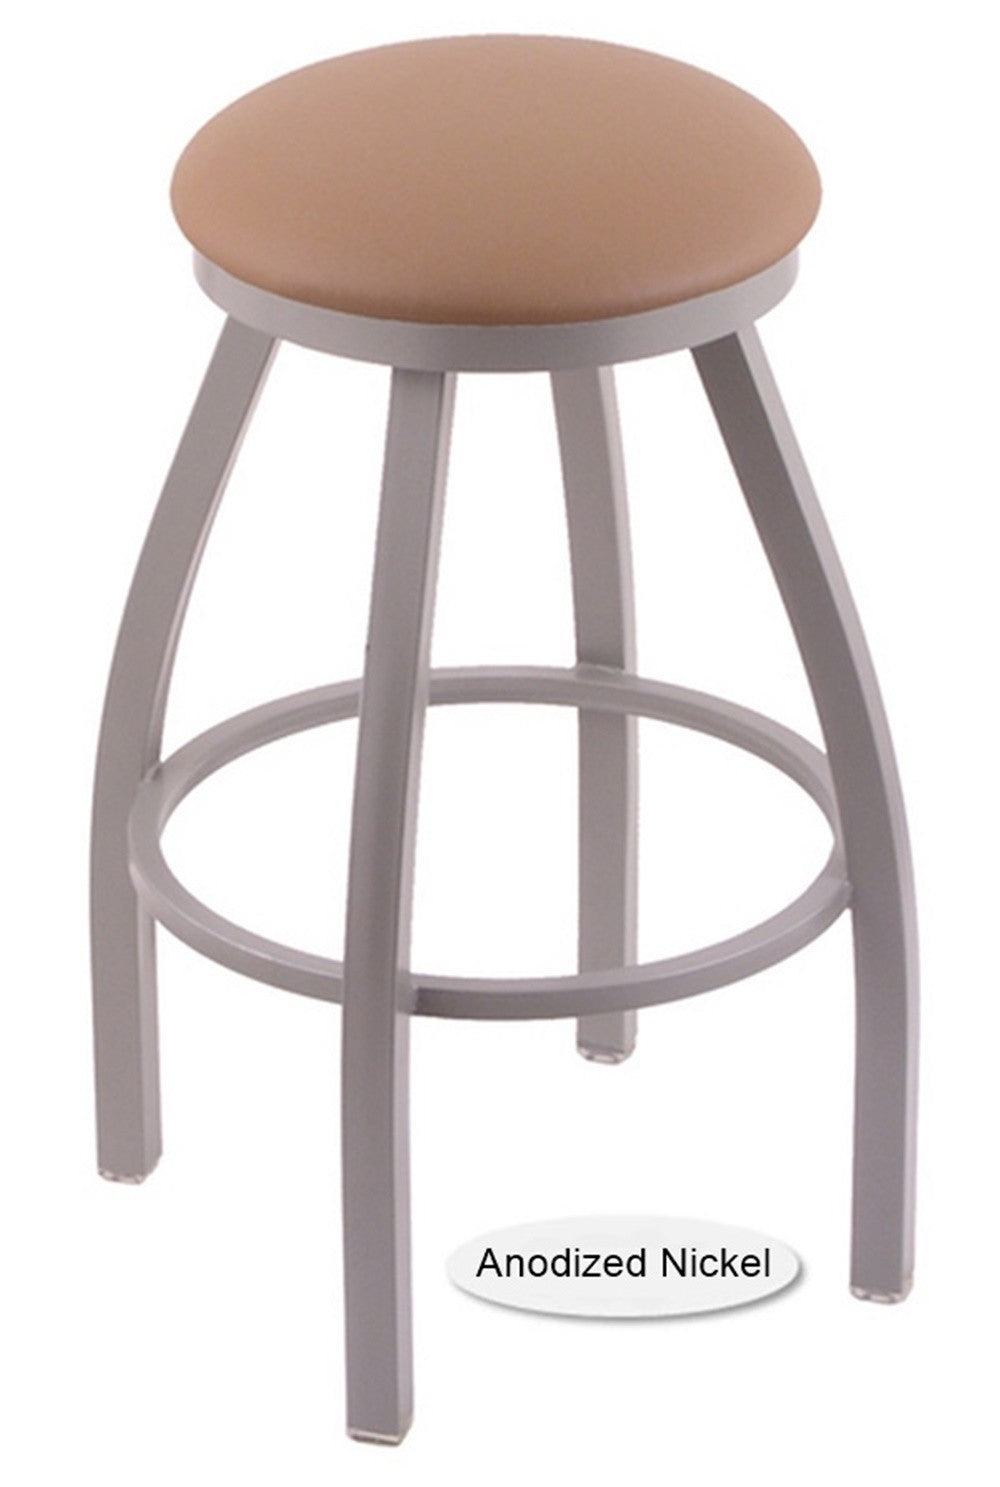 Big and Tall XL Anondized Nickel Misha Swivel Bar Stool